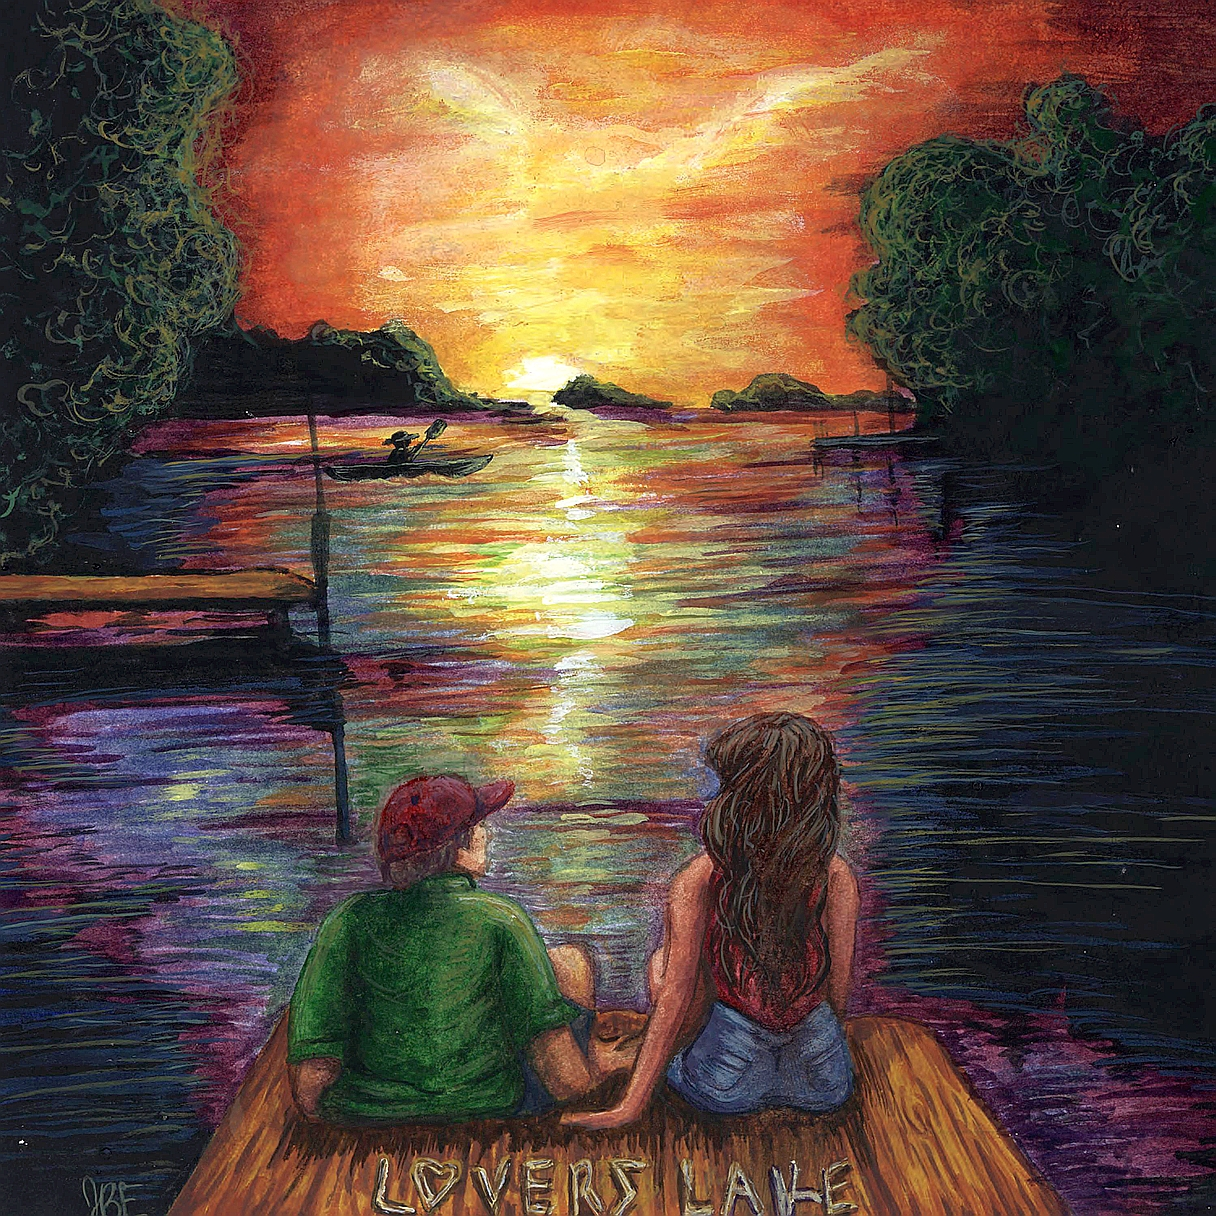 Lovers Lake - record artwork